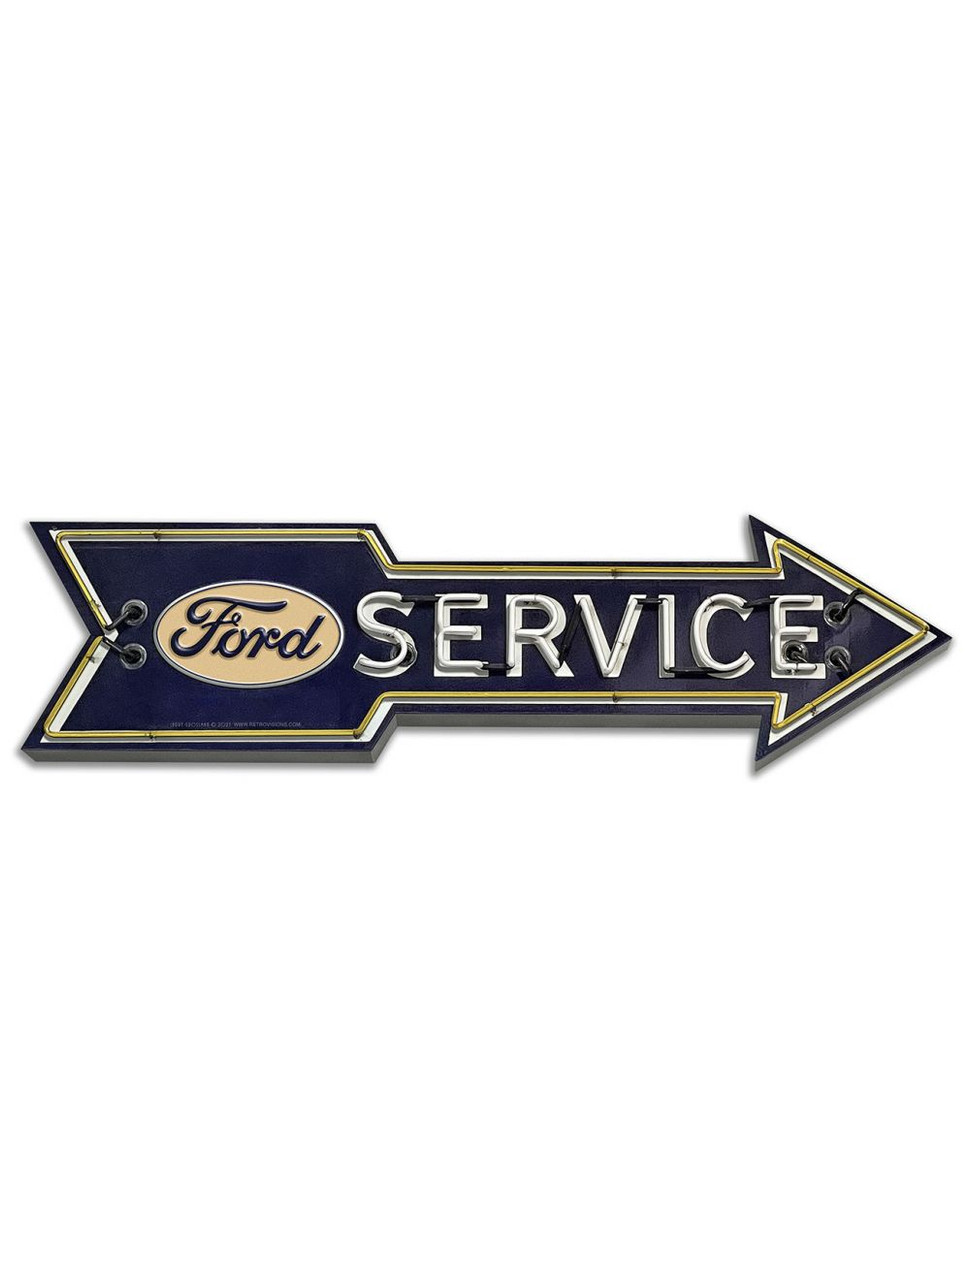 Ford Service 'Neon Style' Metal Sign 24 x 7 Inches